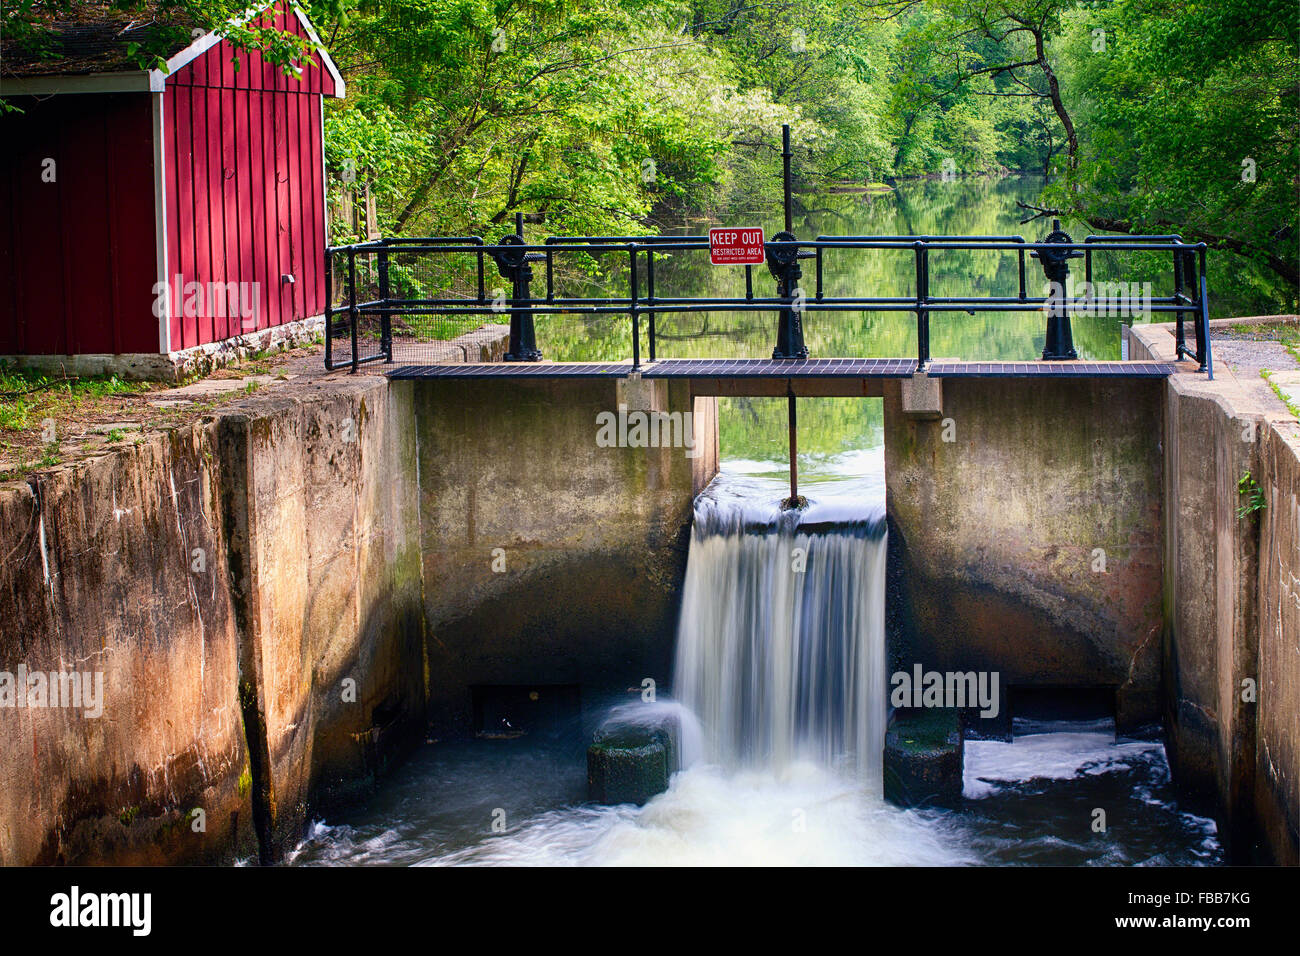 Lock on The Deleware & Raritan Canal at Griggstown During Spring, Somerset County, New Jersey, USA - Stock Image